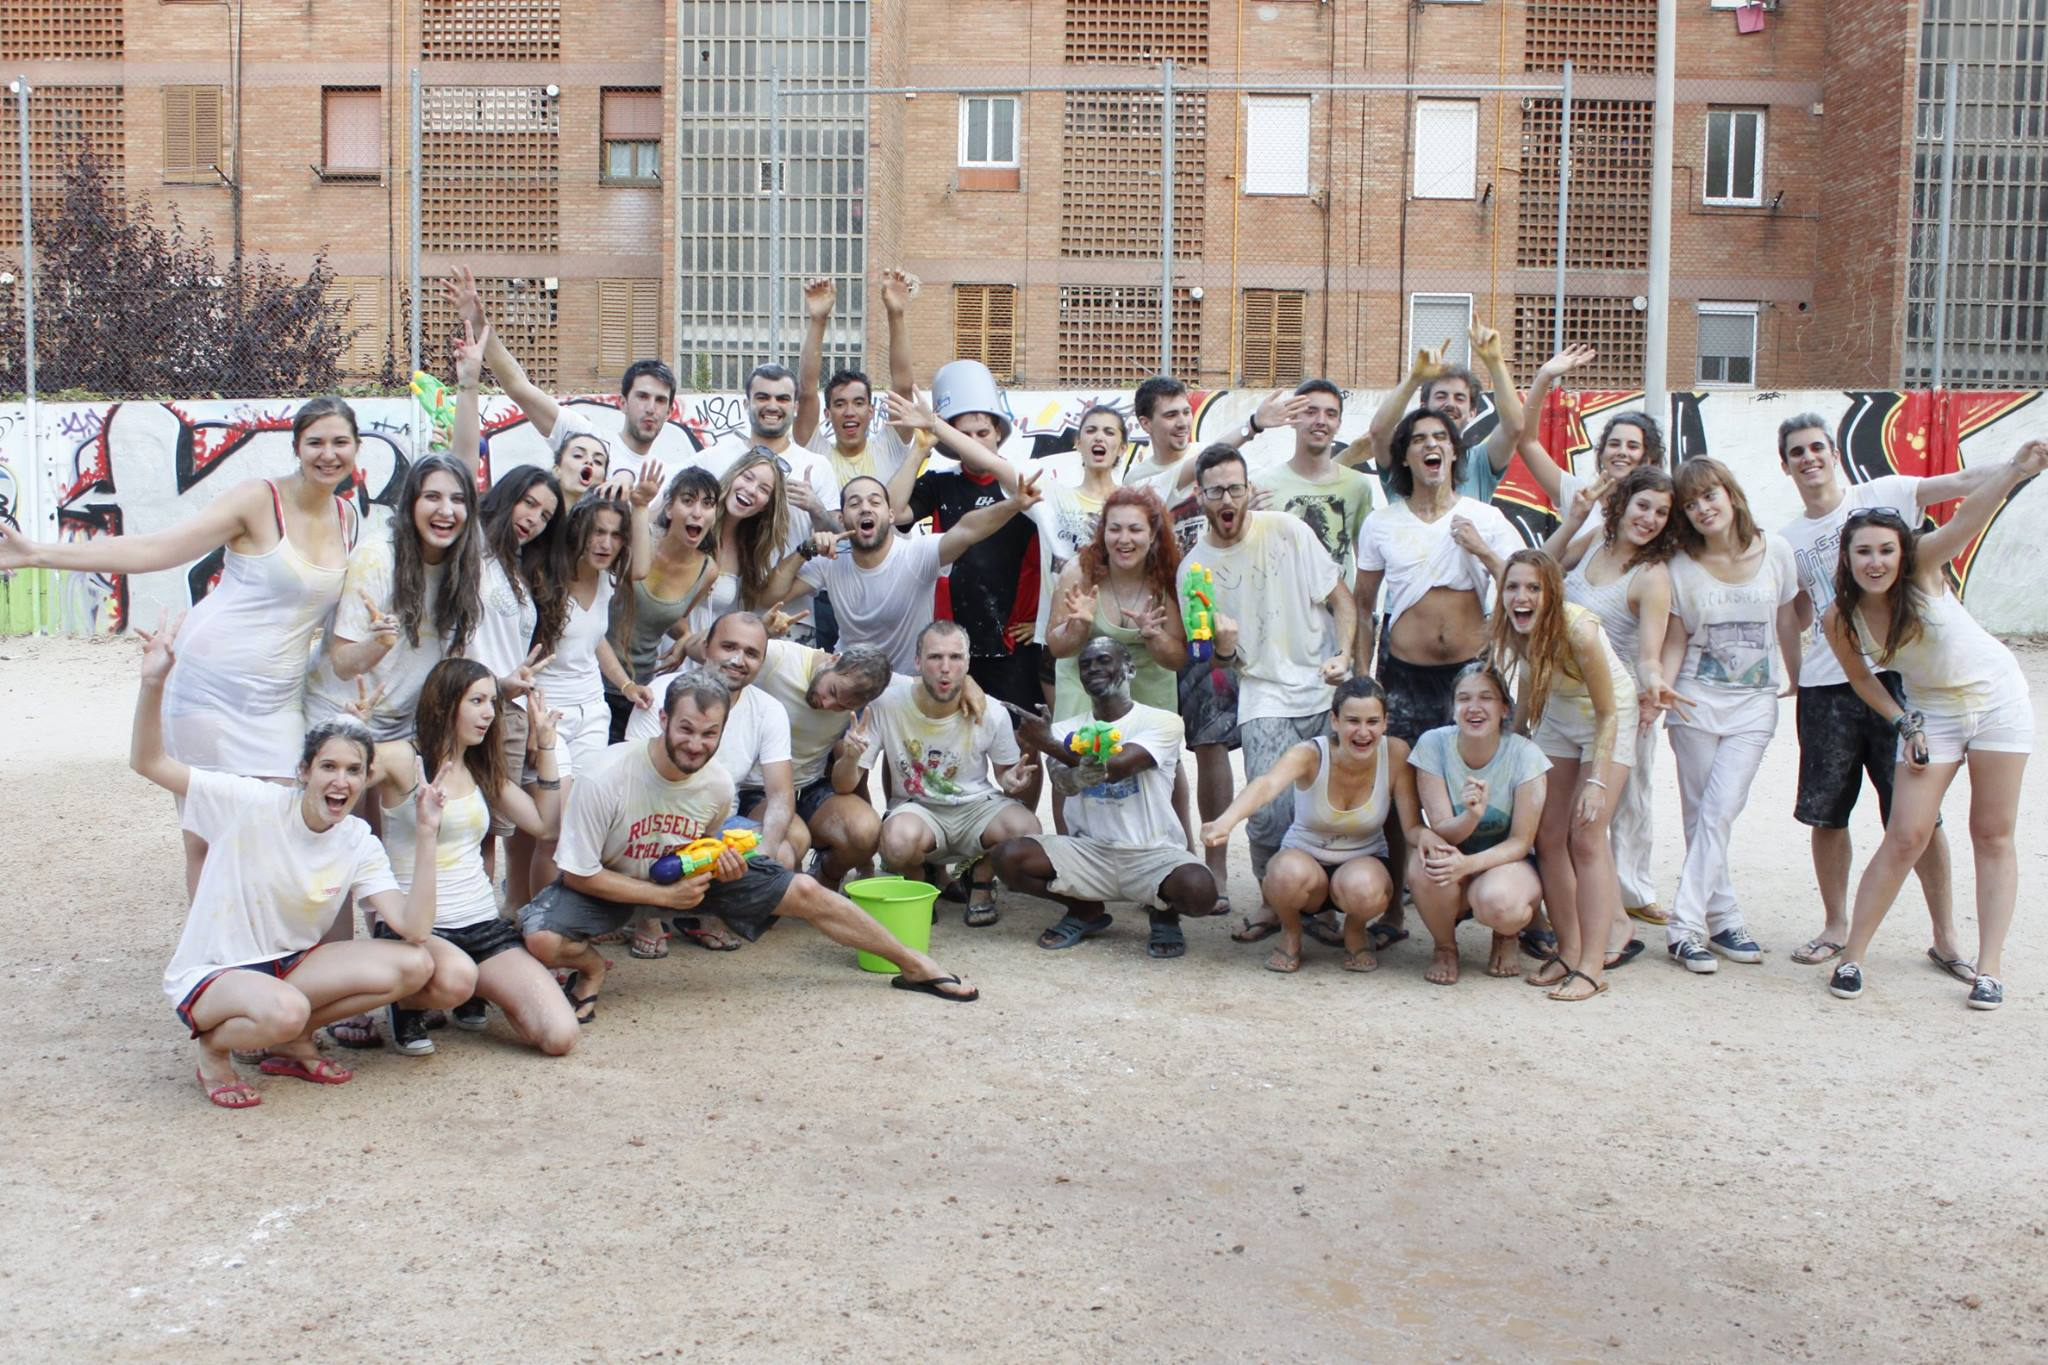 Travel Summer University Barcelona and Valladolid: a once-in-a-lifetime experience!